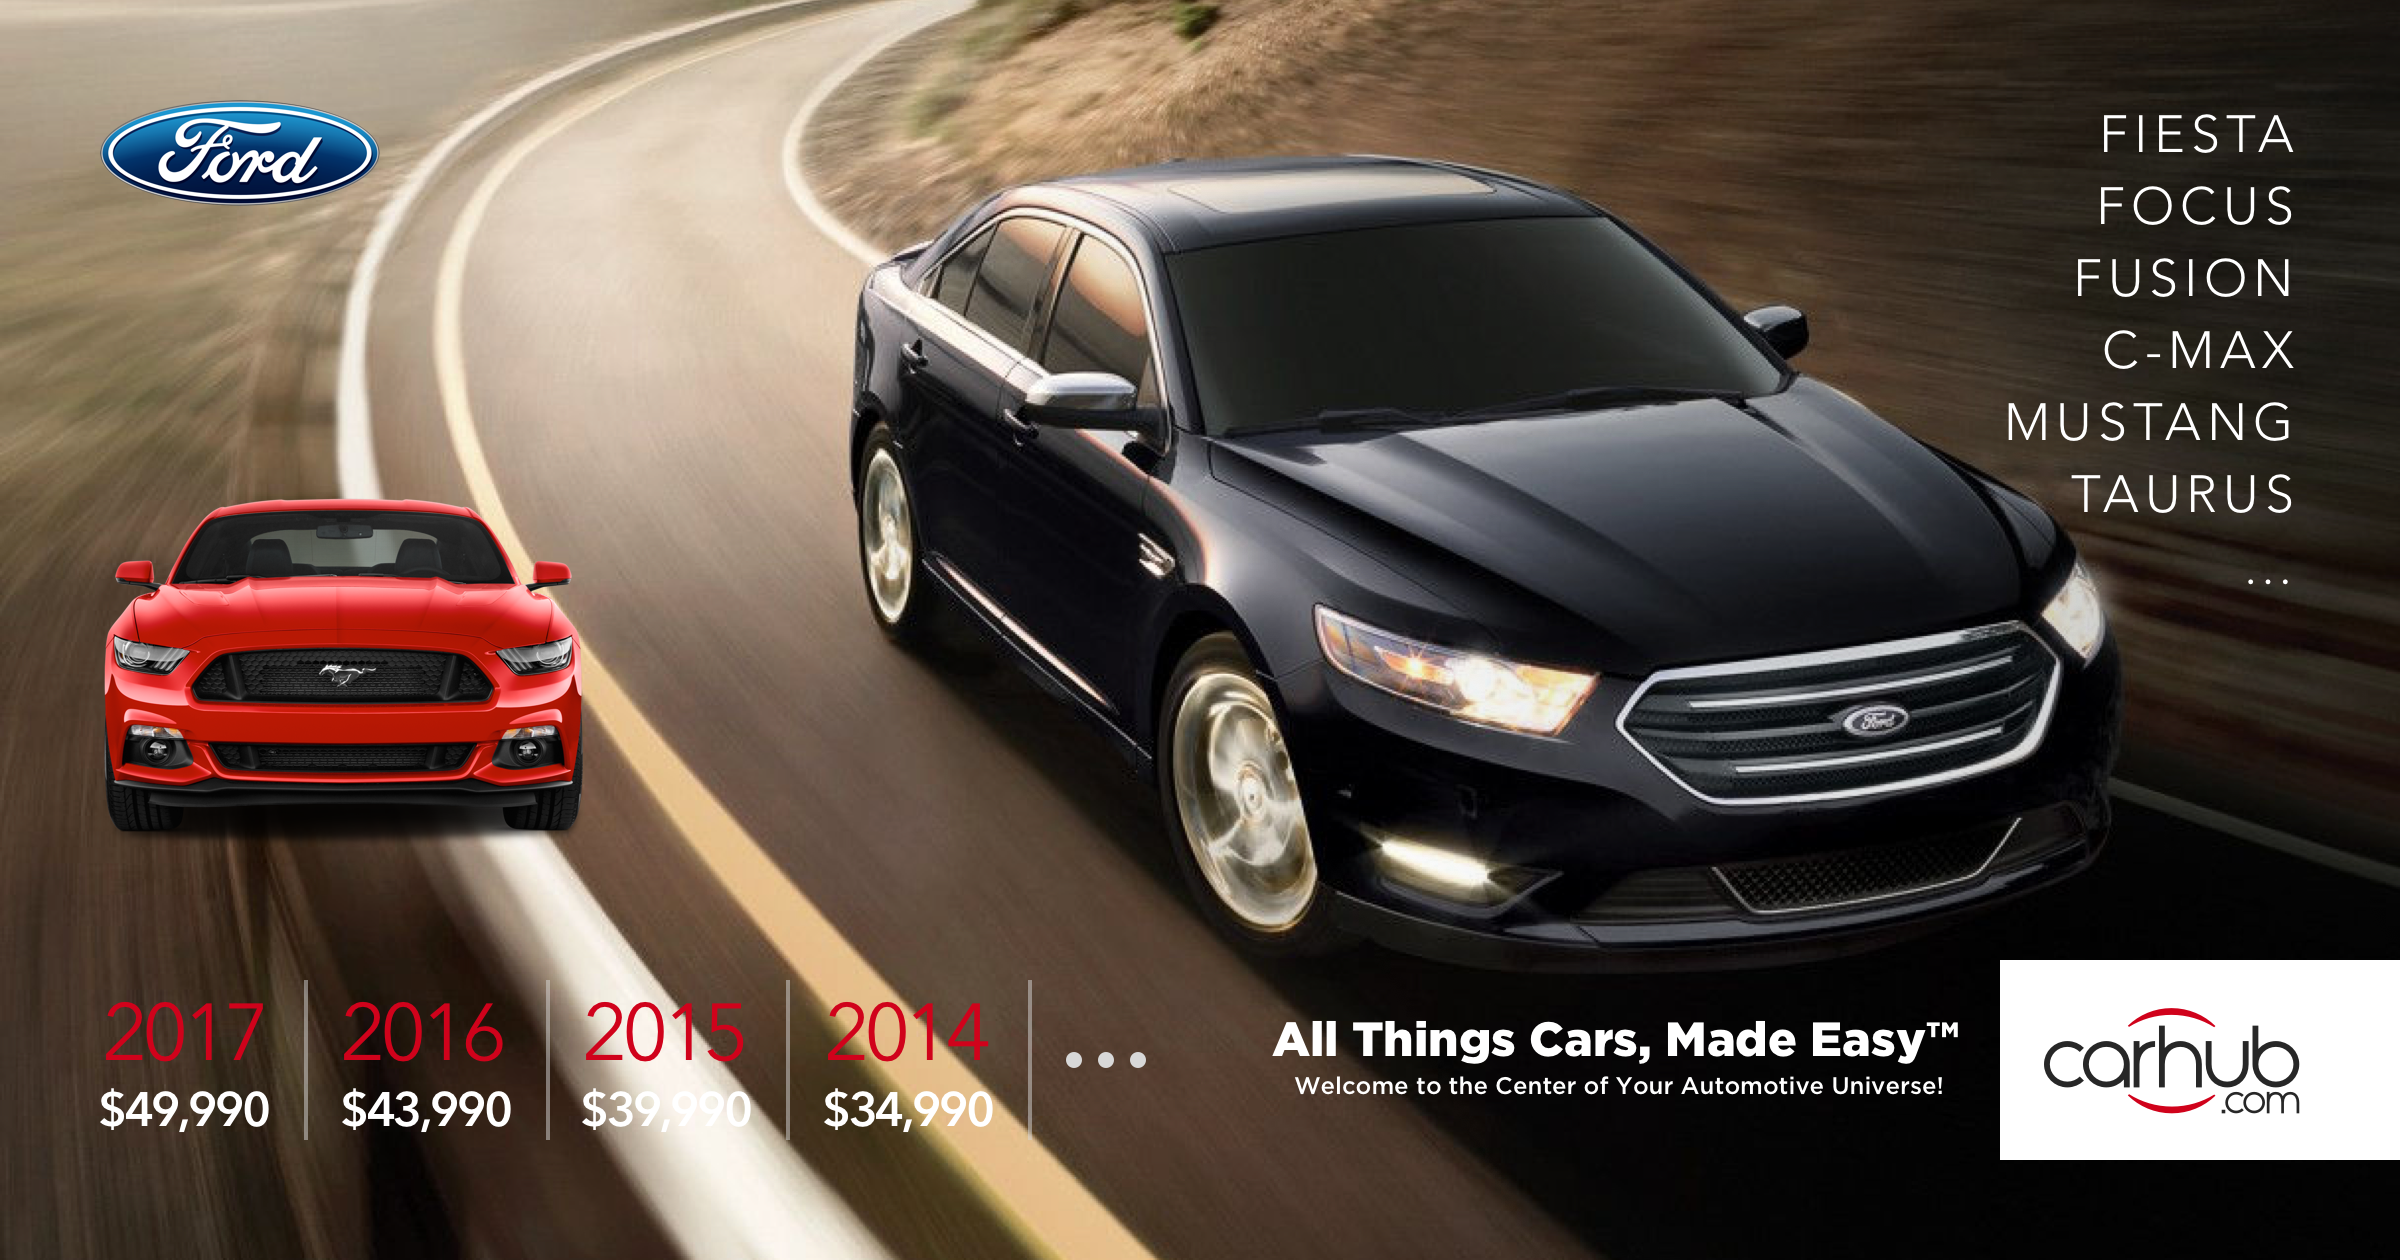 All Ford Models All Ford Models With Photos Videos By Carhub Medium